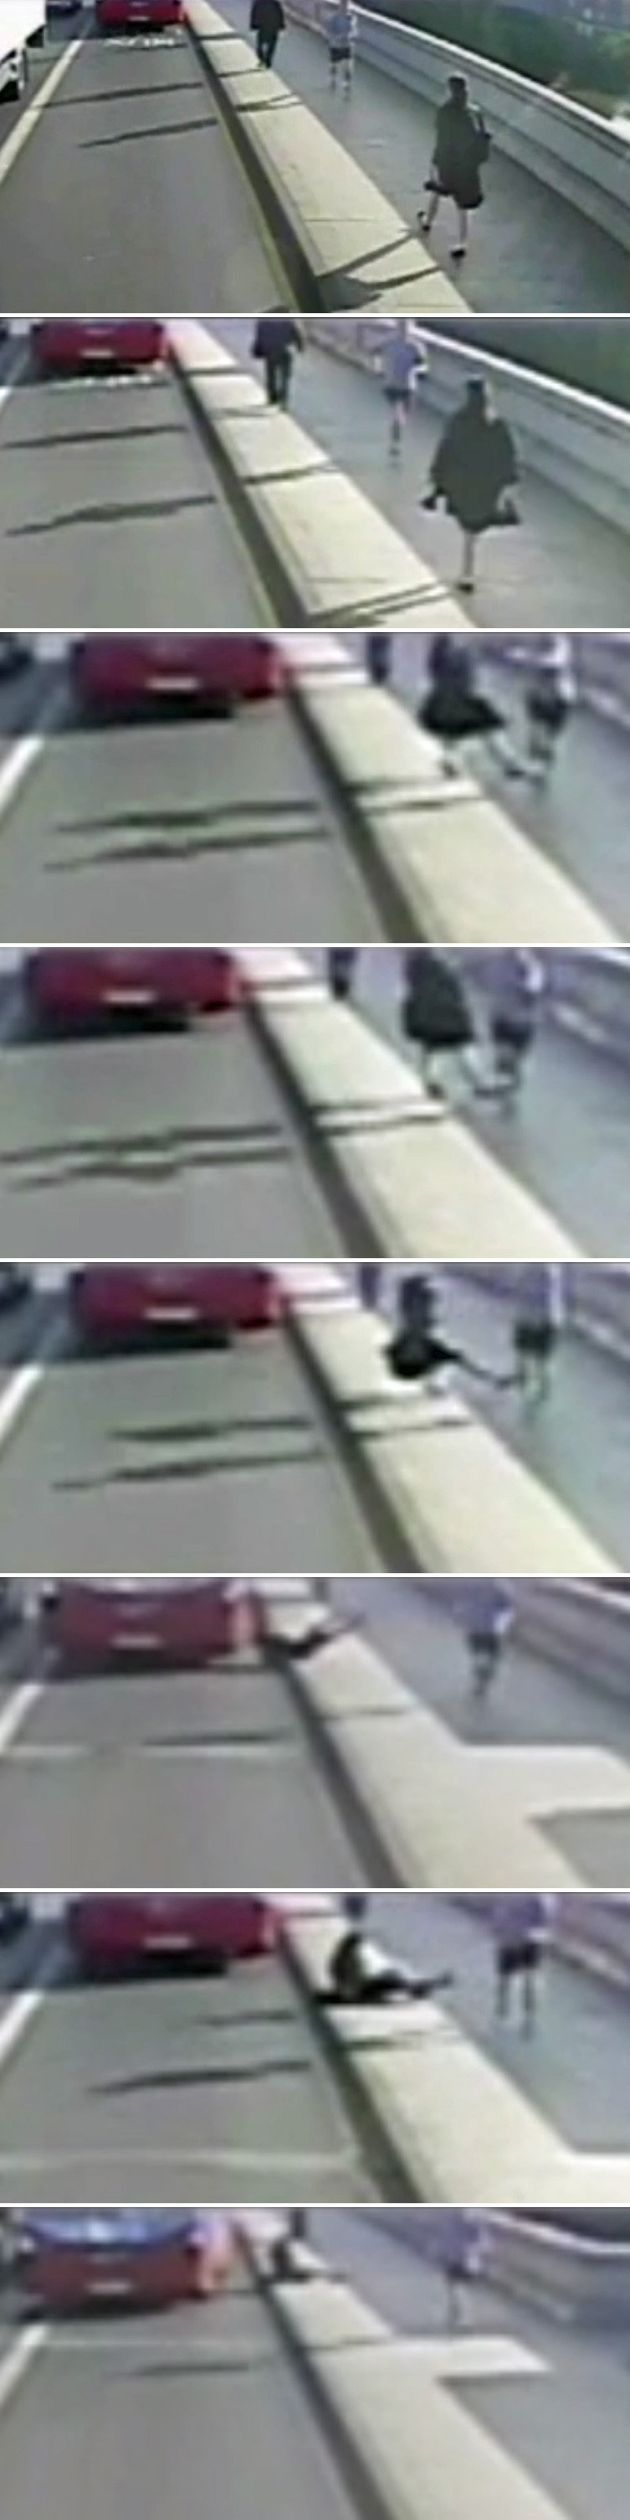 A sequence of pictures taken on CCTV shows what